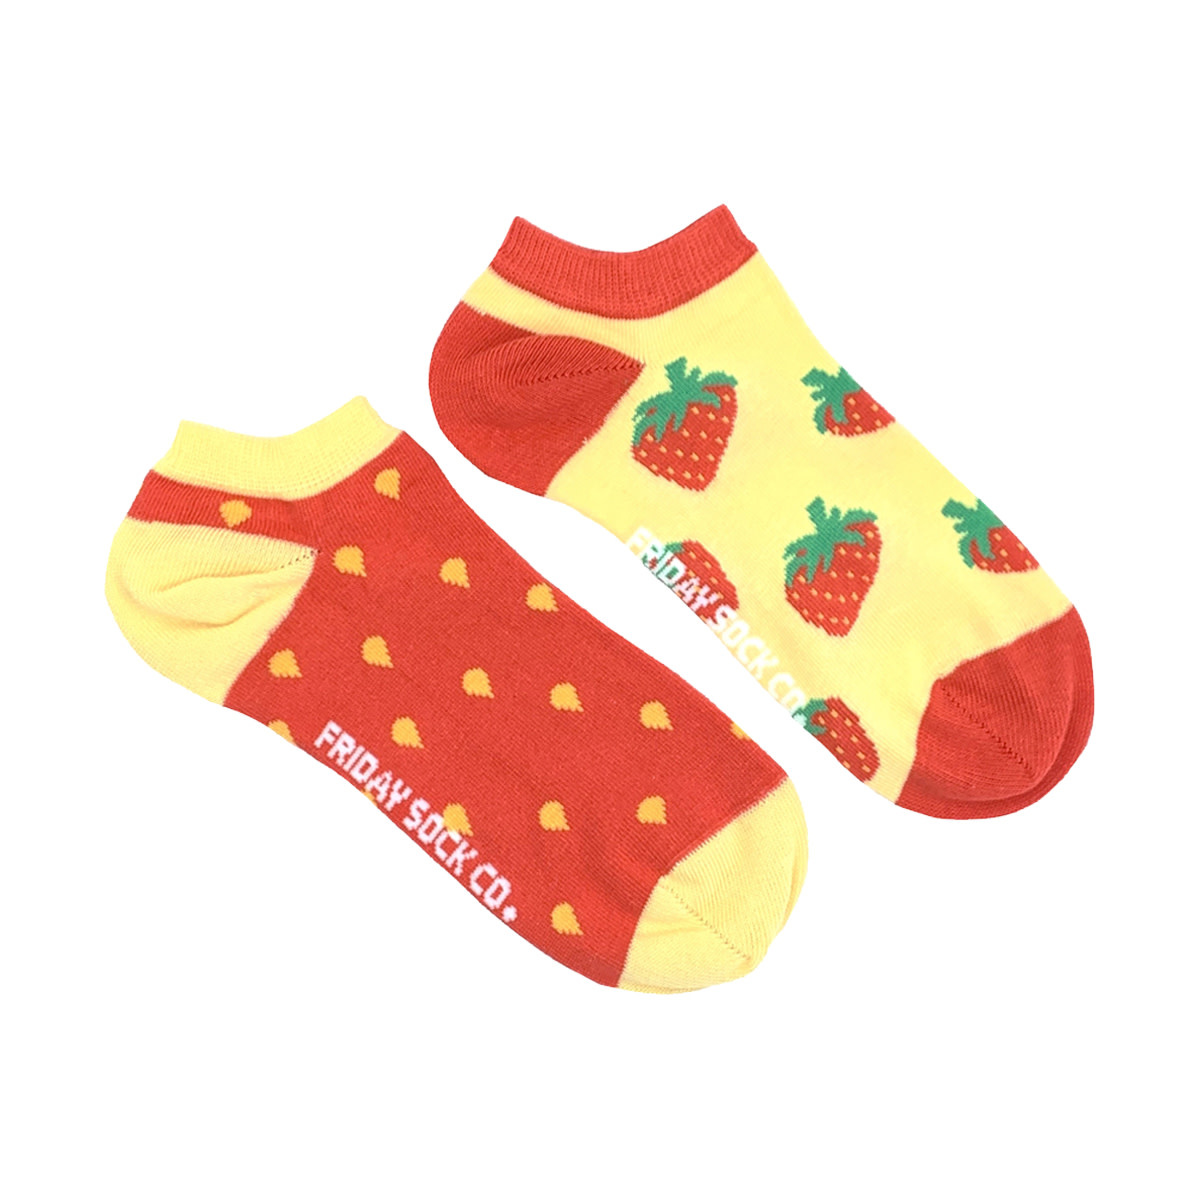 Friday Sock Co. Friday Sock Co. Women's Inside Out Strawberry Ankle W 5 - 10 (M - 4 - 8)